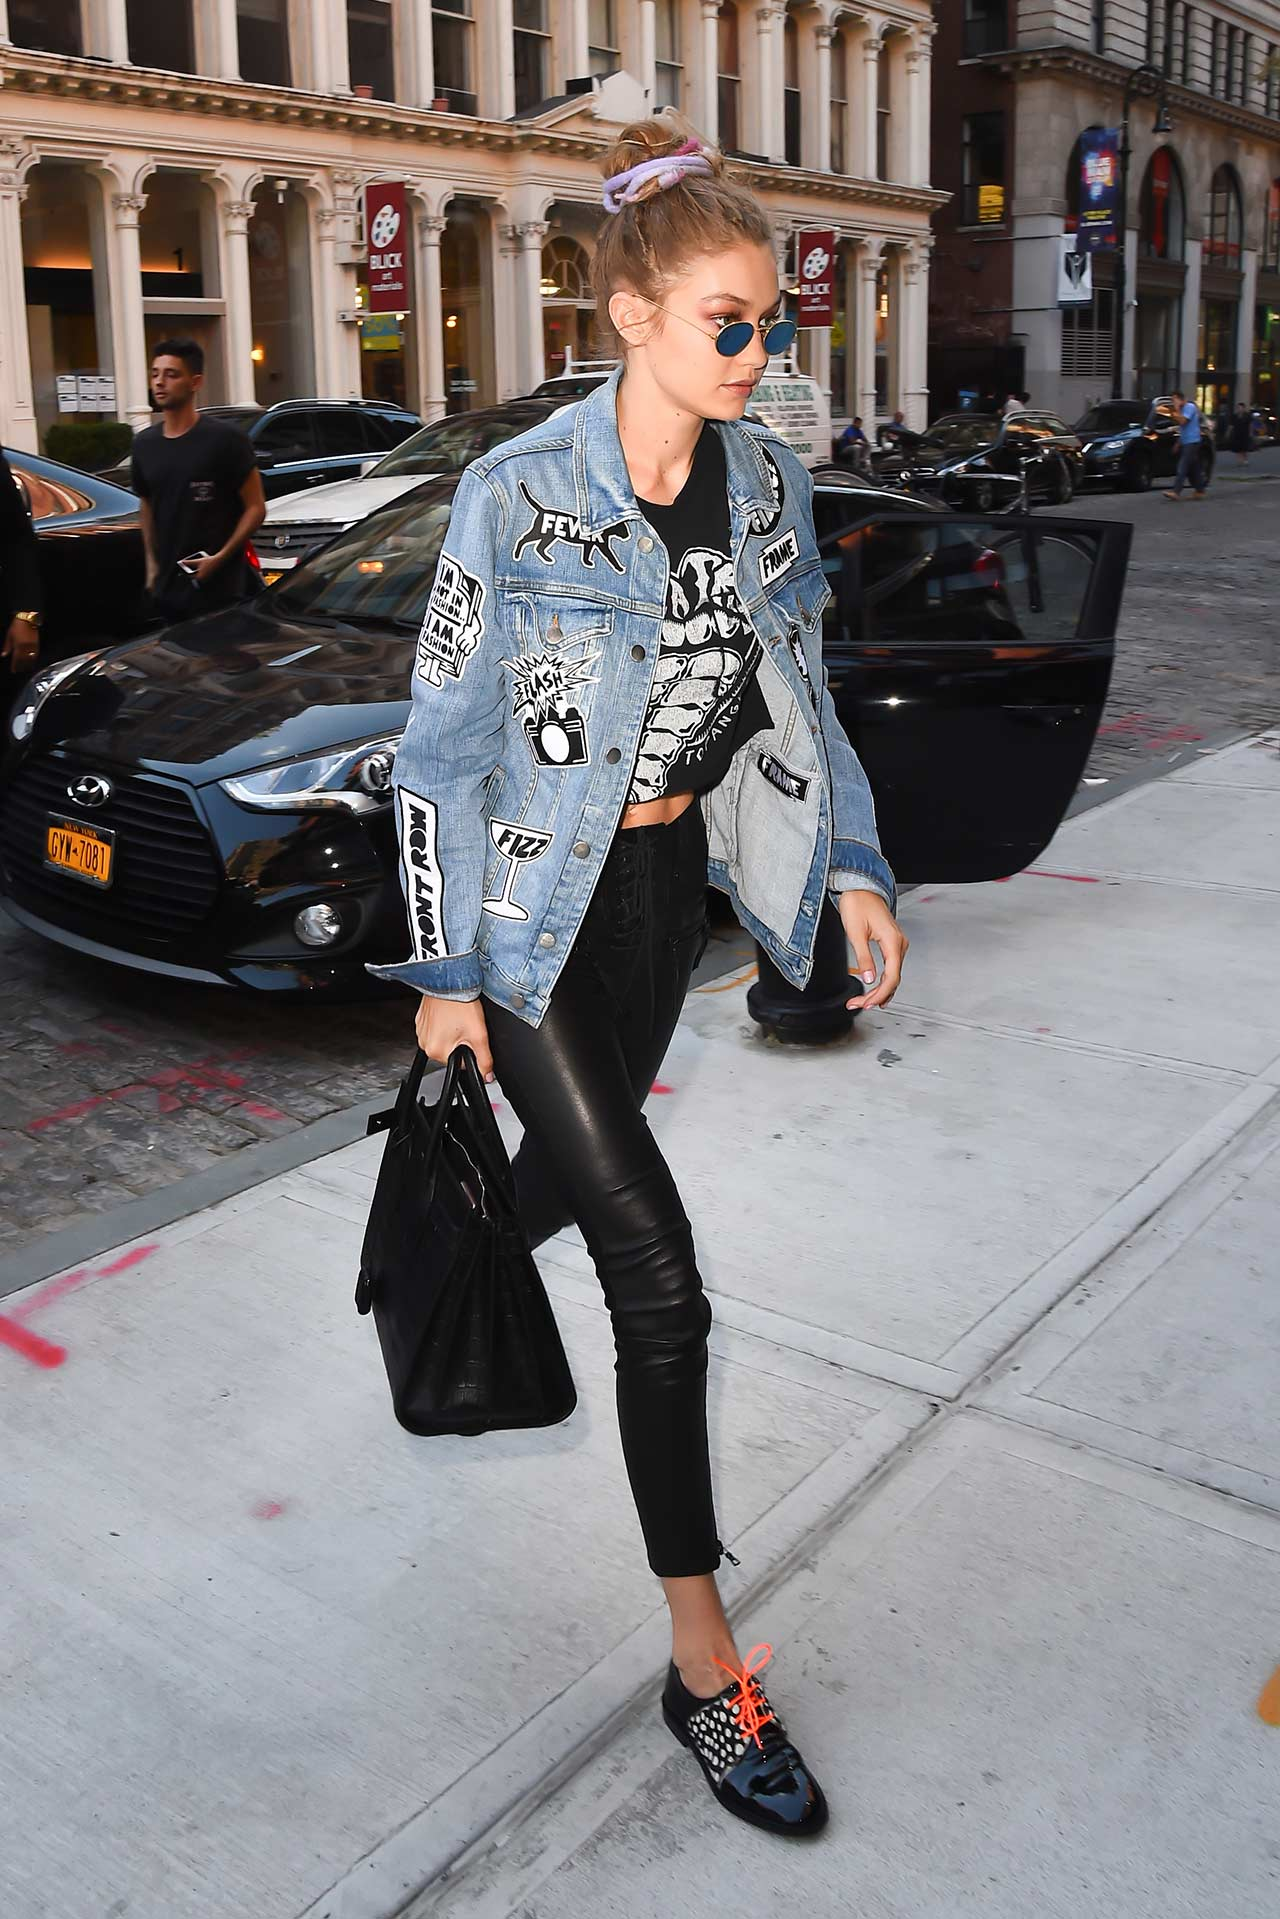 Gigi-Hadid-Wears-FRAME-Denim-Jacket-&-Unravel-Leather-Pants-2